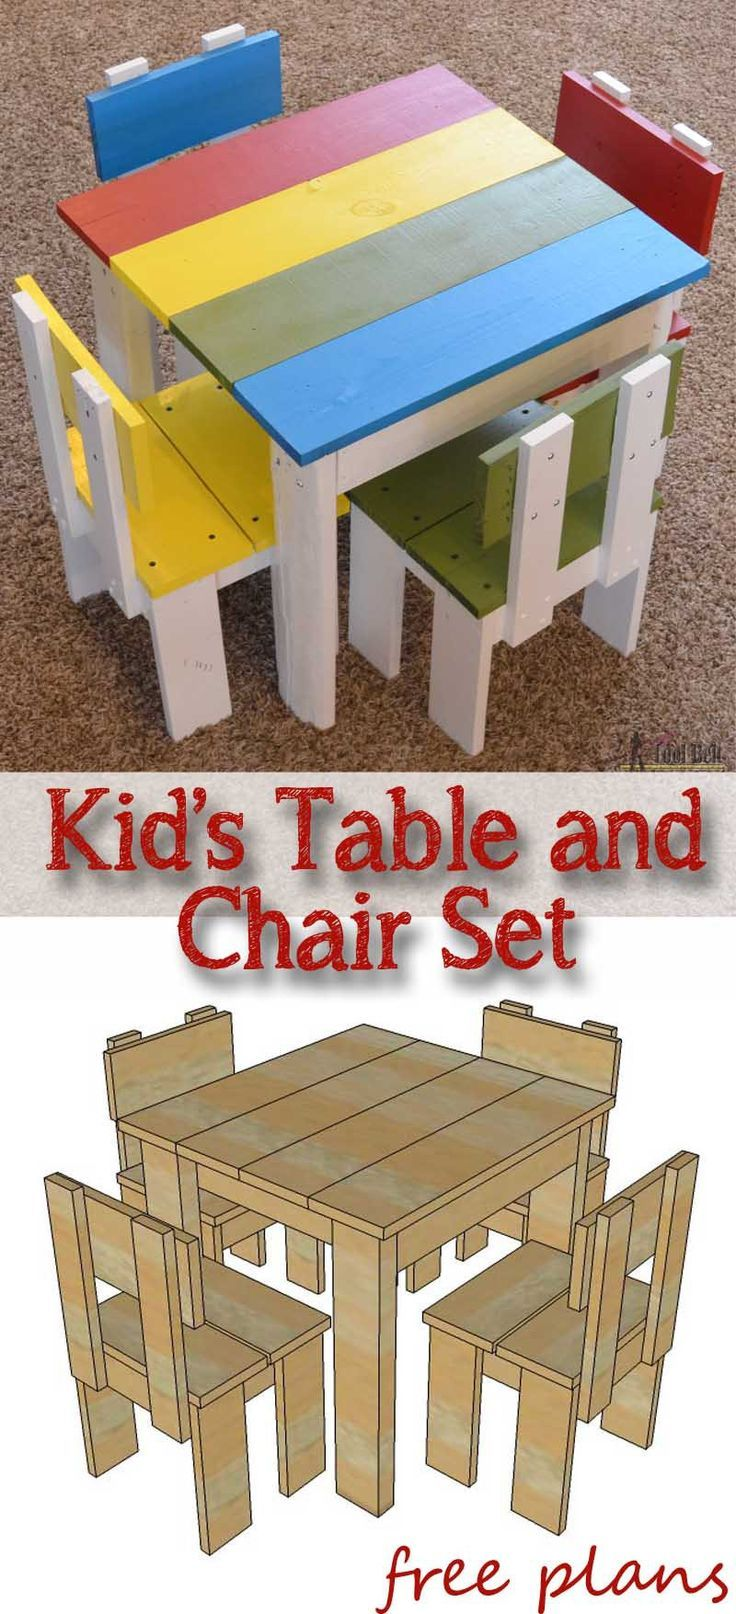 little kid table and chairs gym chest chair simple s set remodelaholic contributors woodworking projects diy